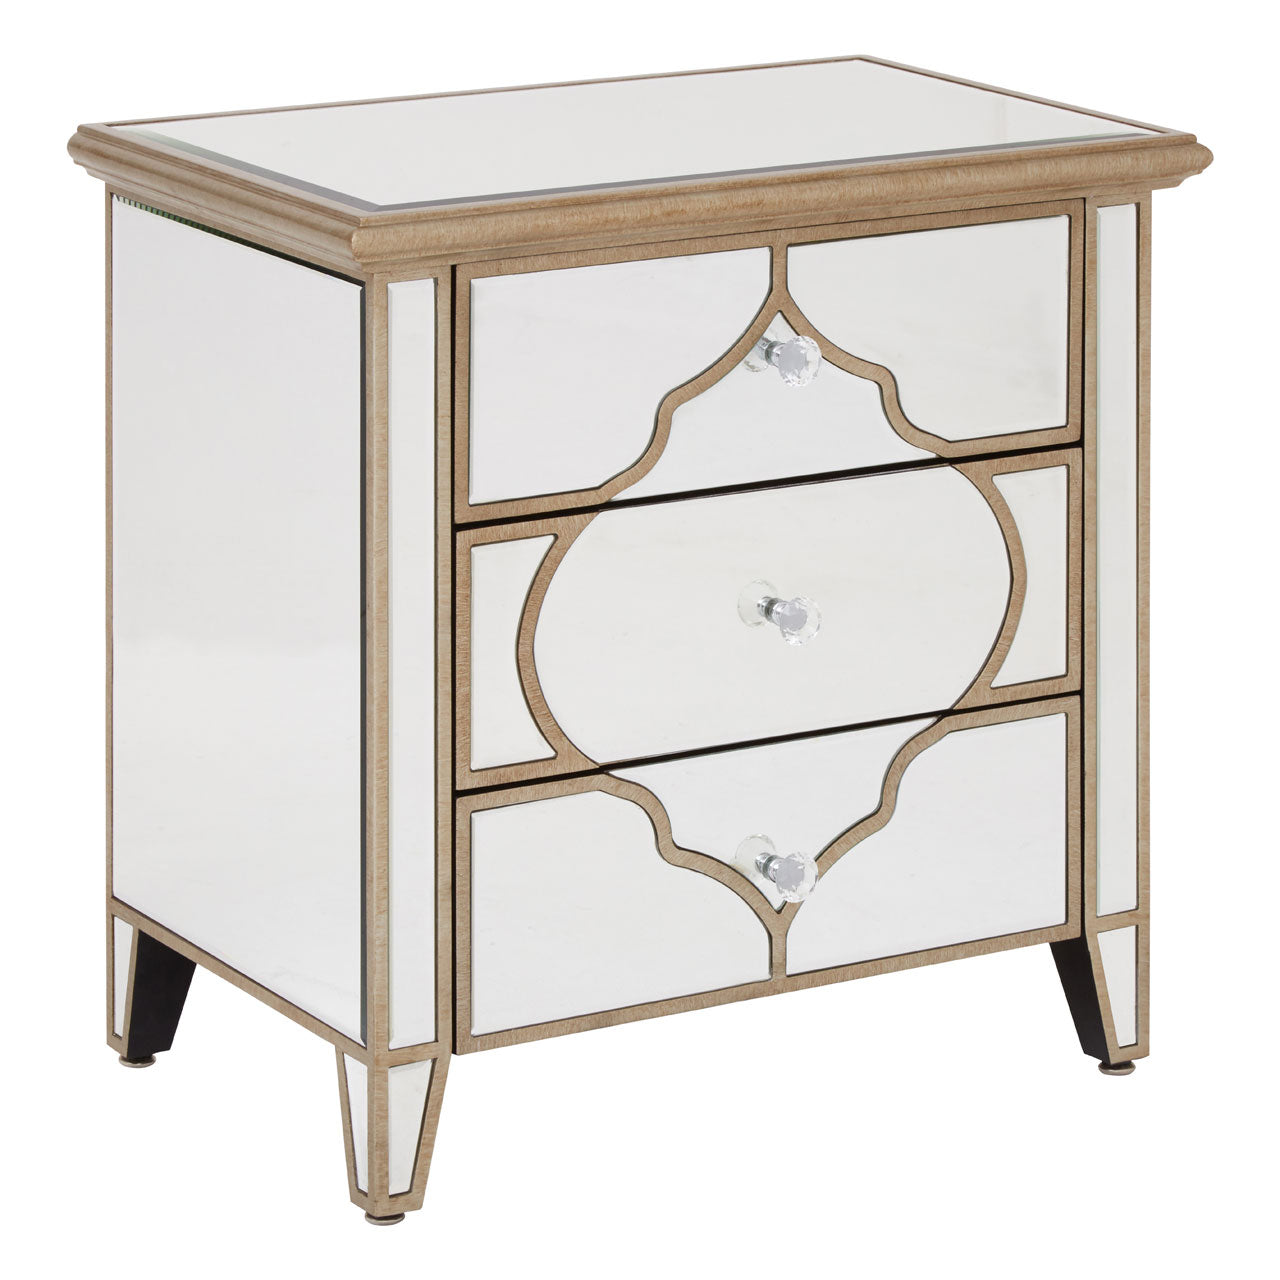 Medina Mirrored Cabinet Small